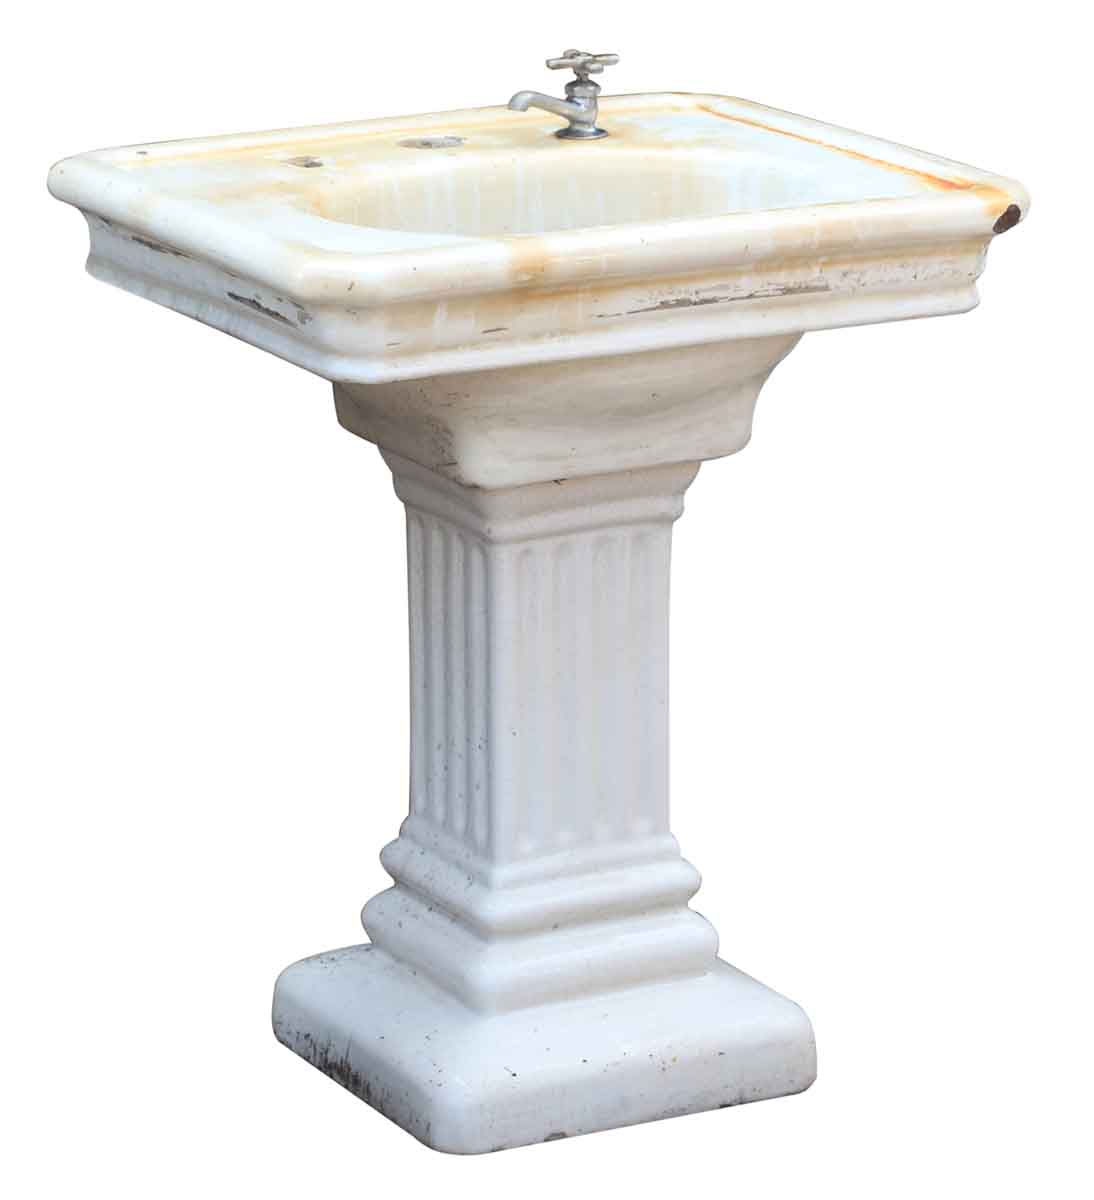 fluted porcelain finished earthenware sink with pedestal